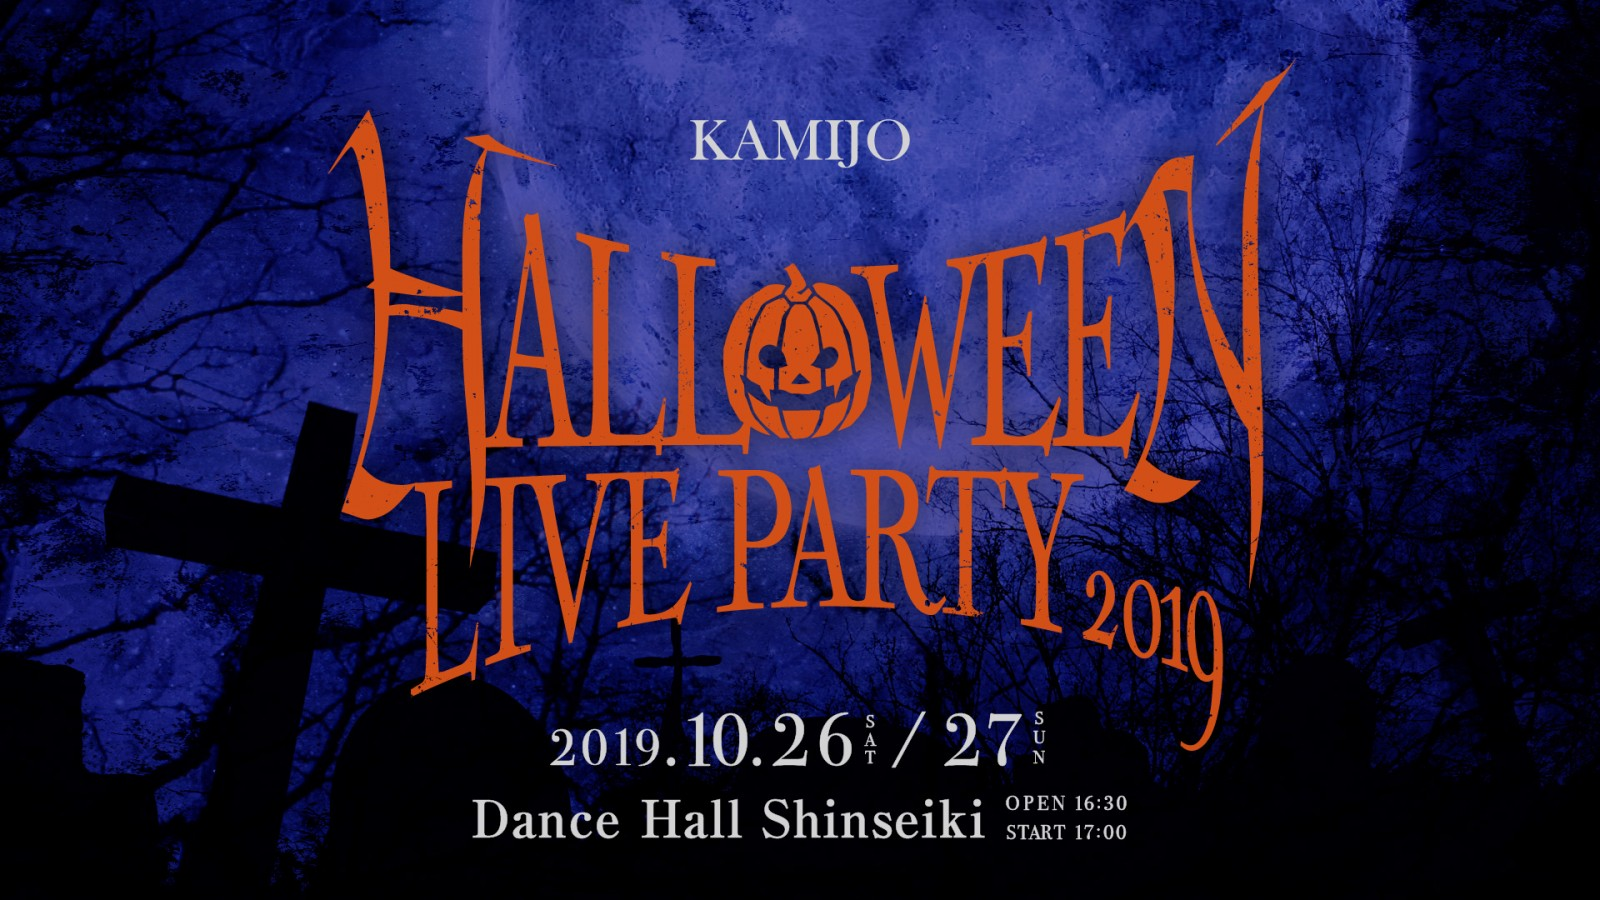 HALLOWEEN LIVE PARTY 2019